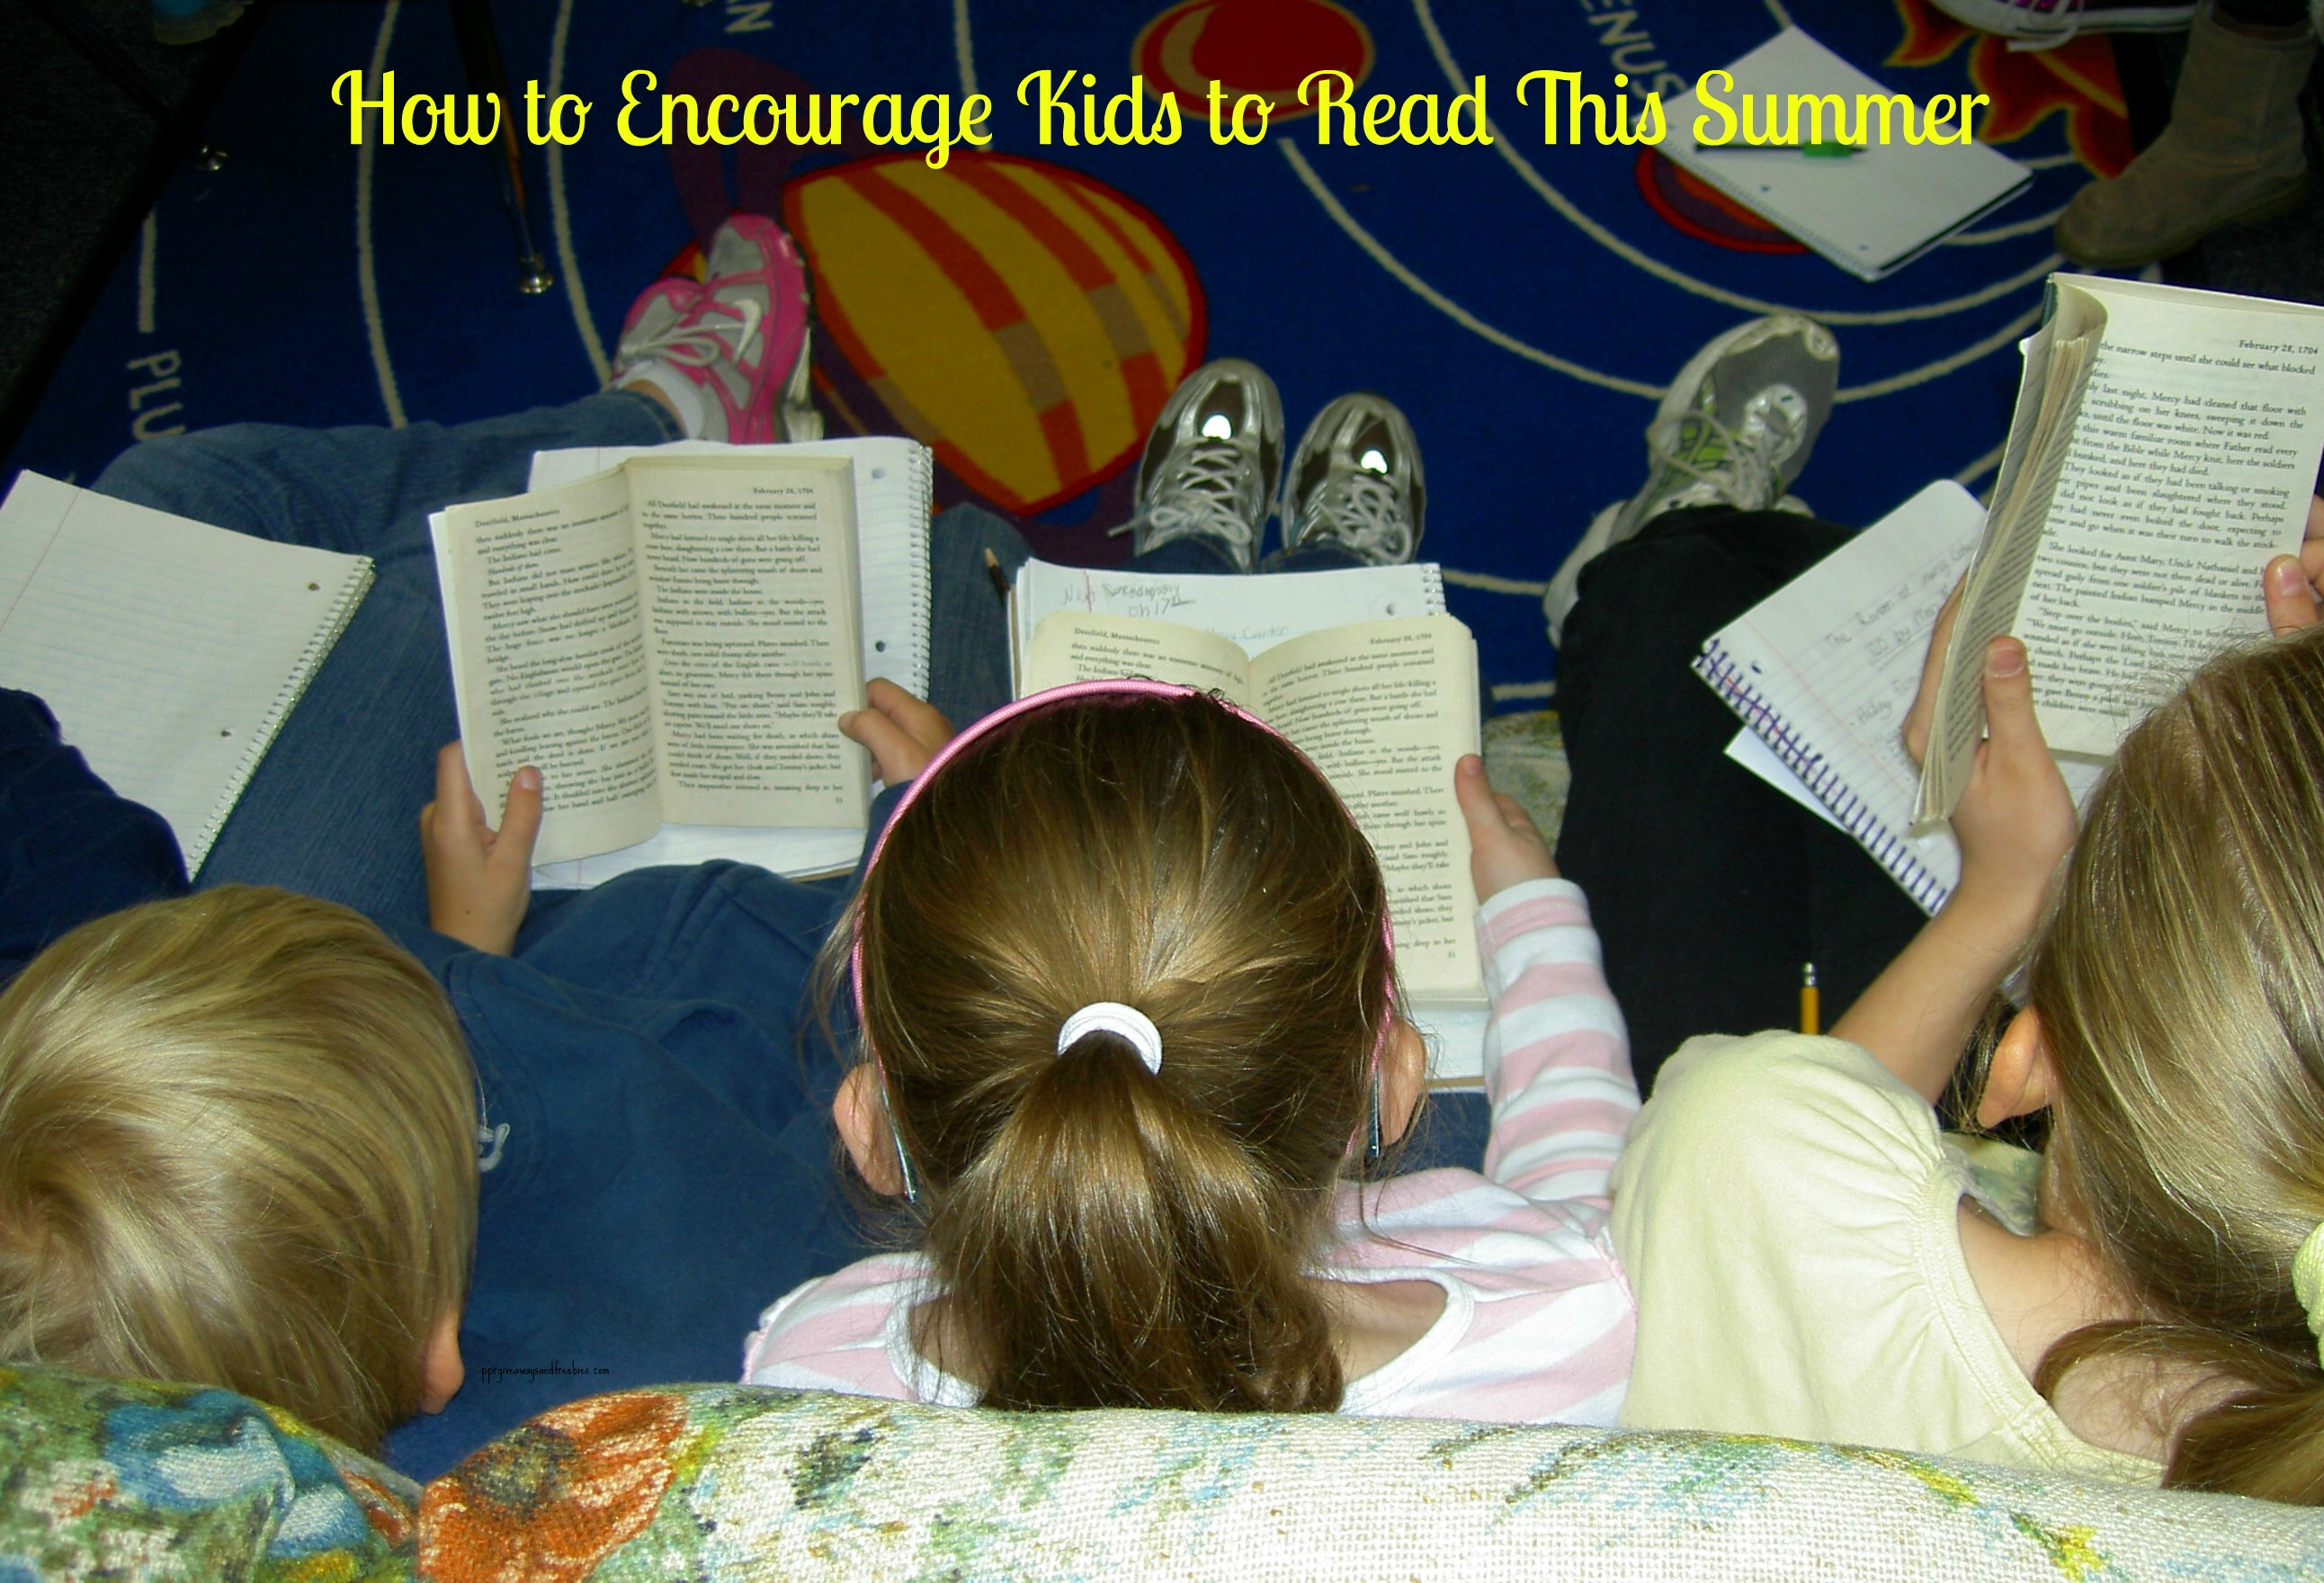 How to Encourage Kids to Read This Summer